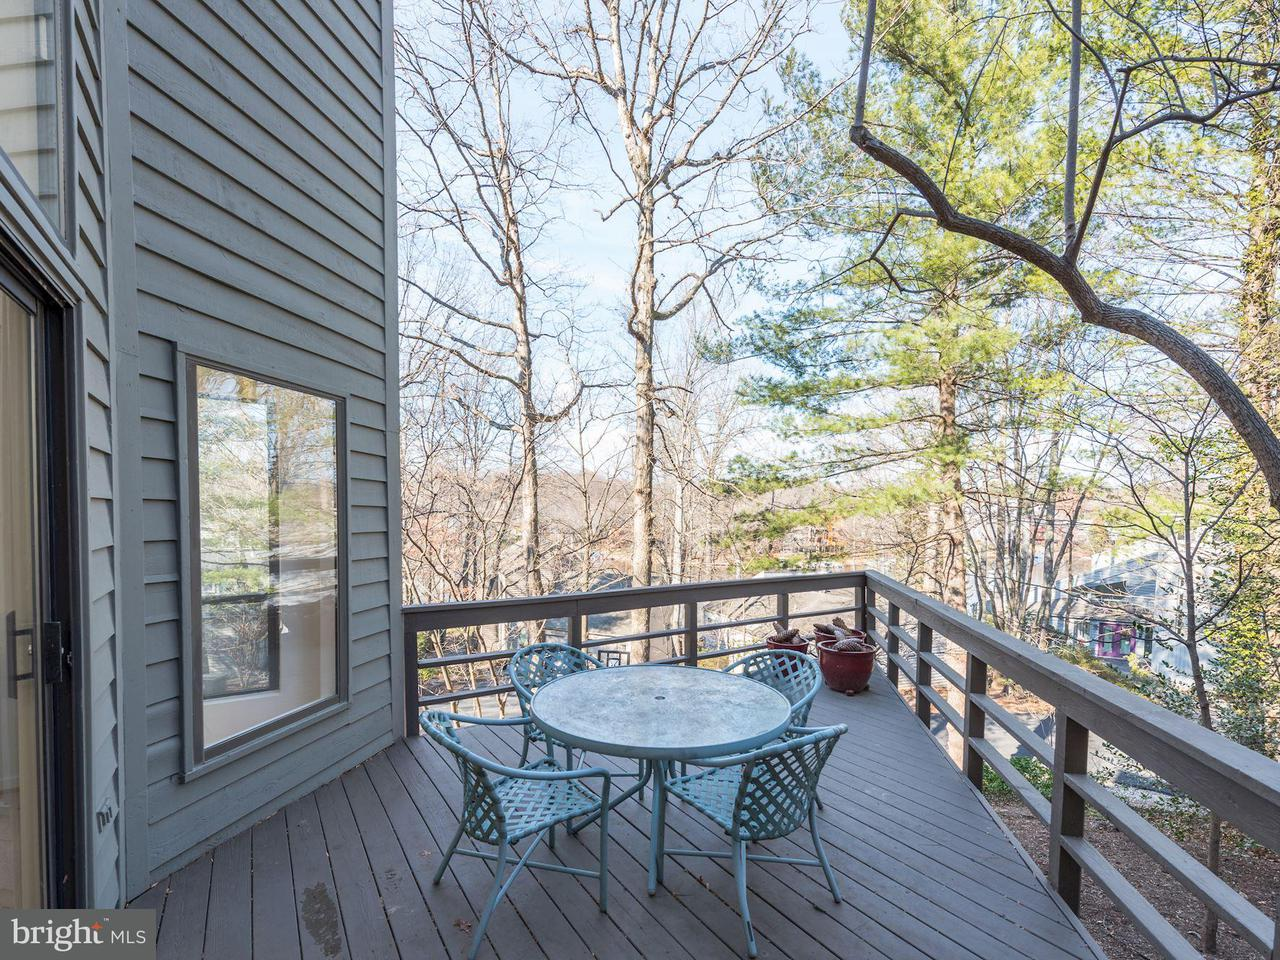 Additional photo for property listing at 2263 Compass Point Lane 2263 Compass Point Lane Reston, Virginia 20191 États-Unis